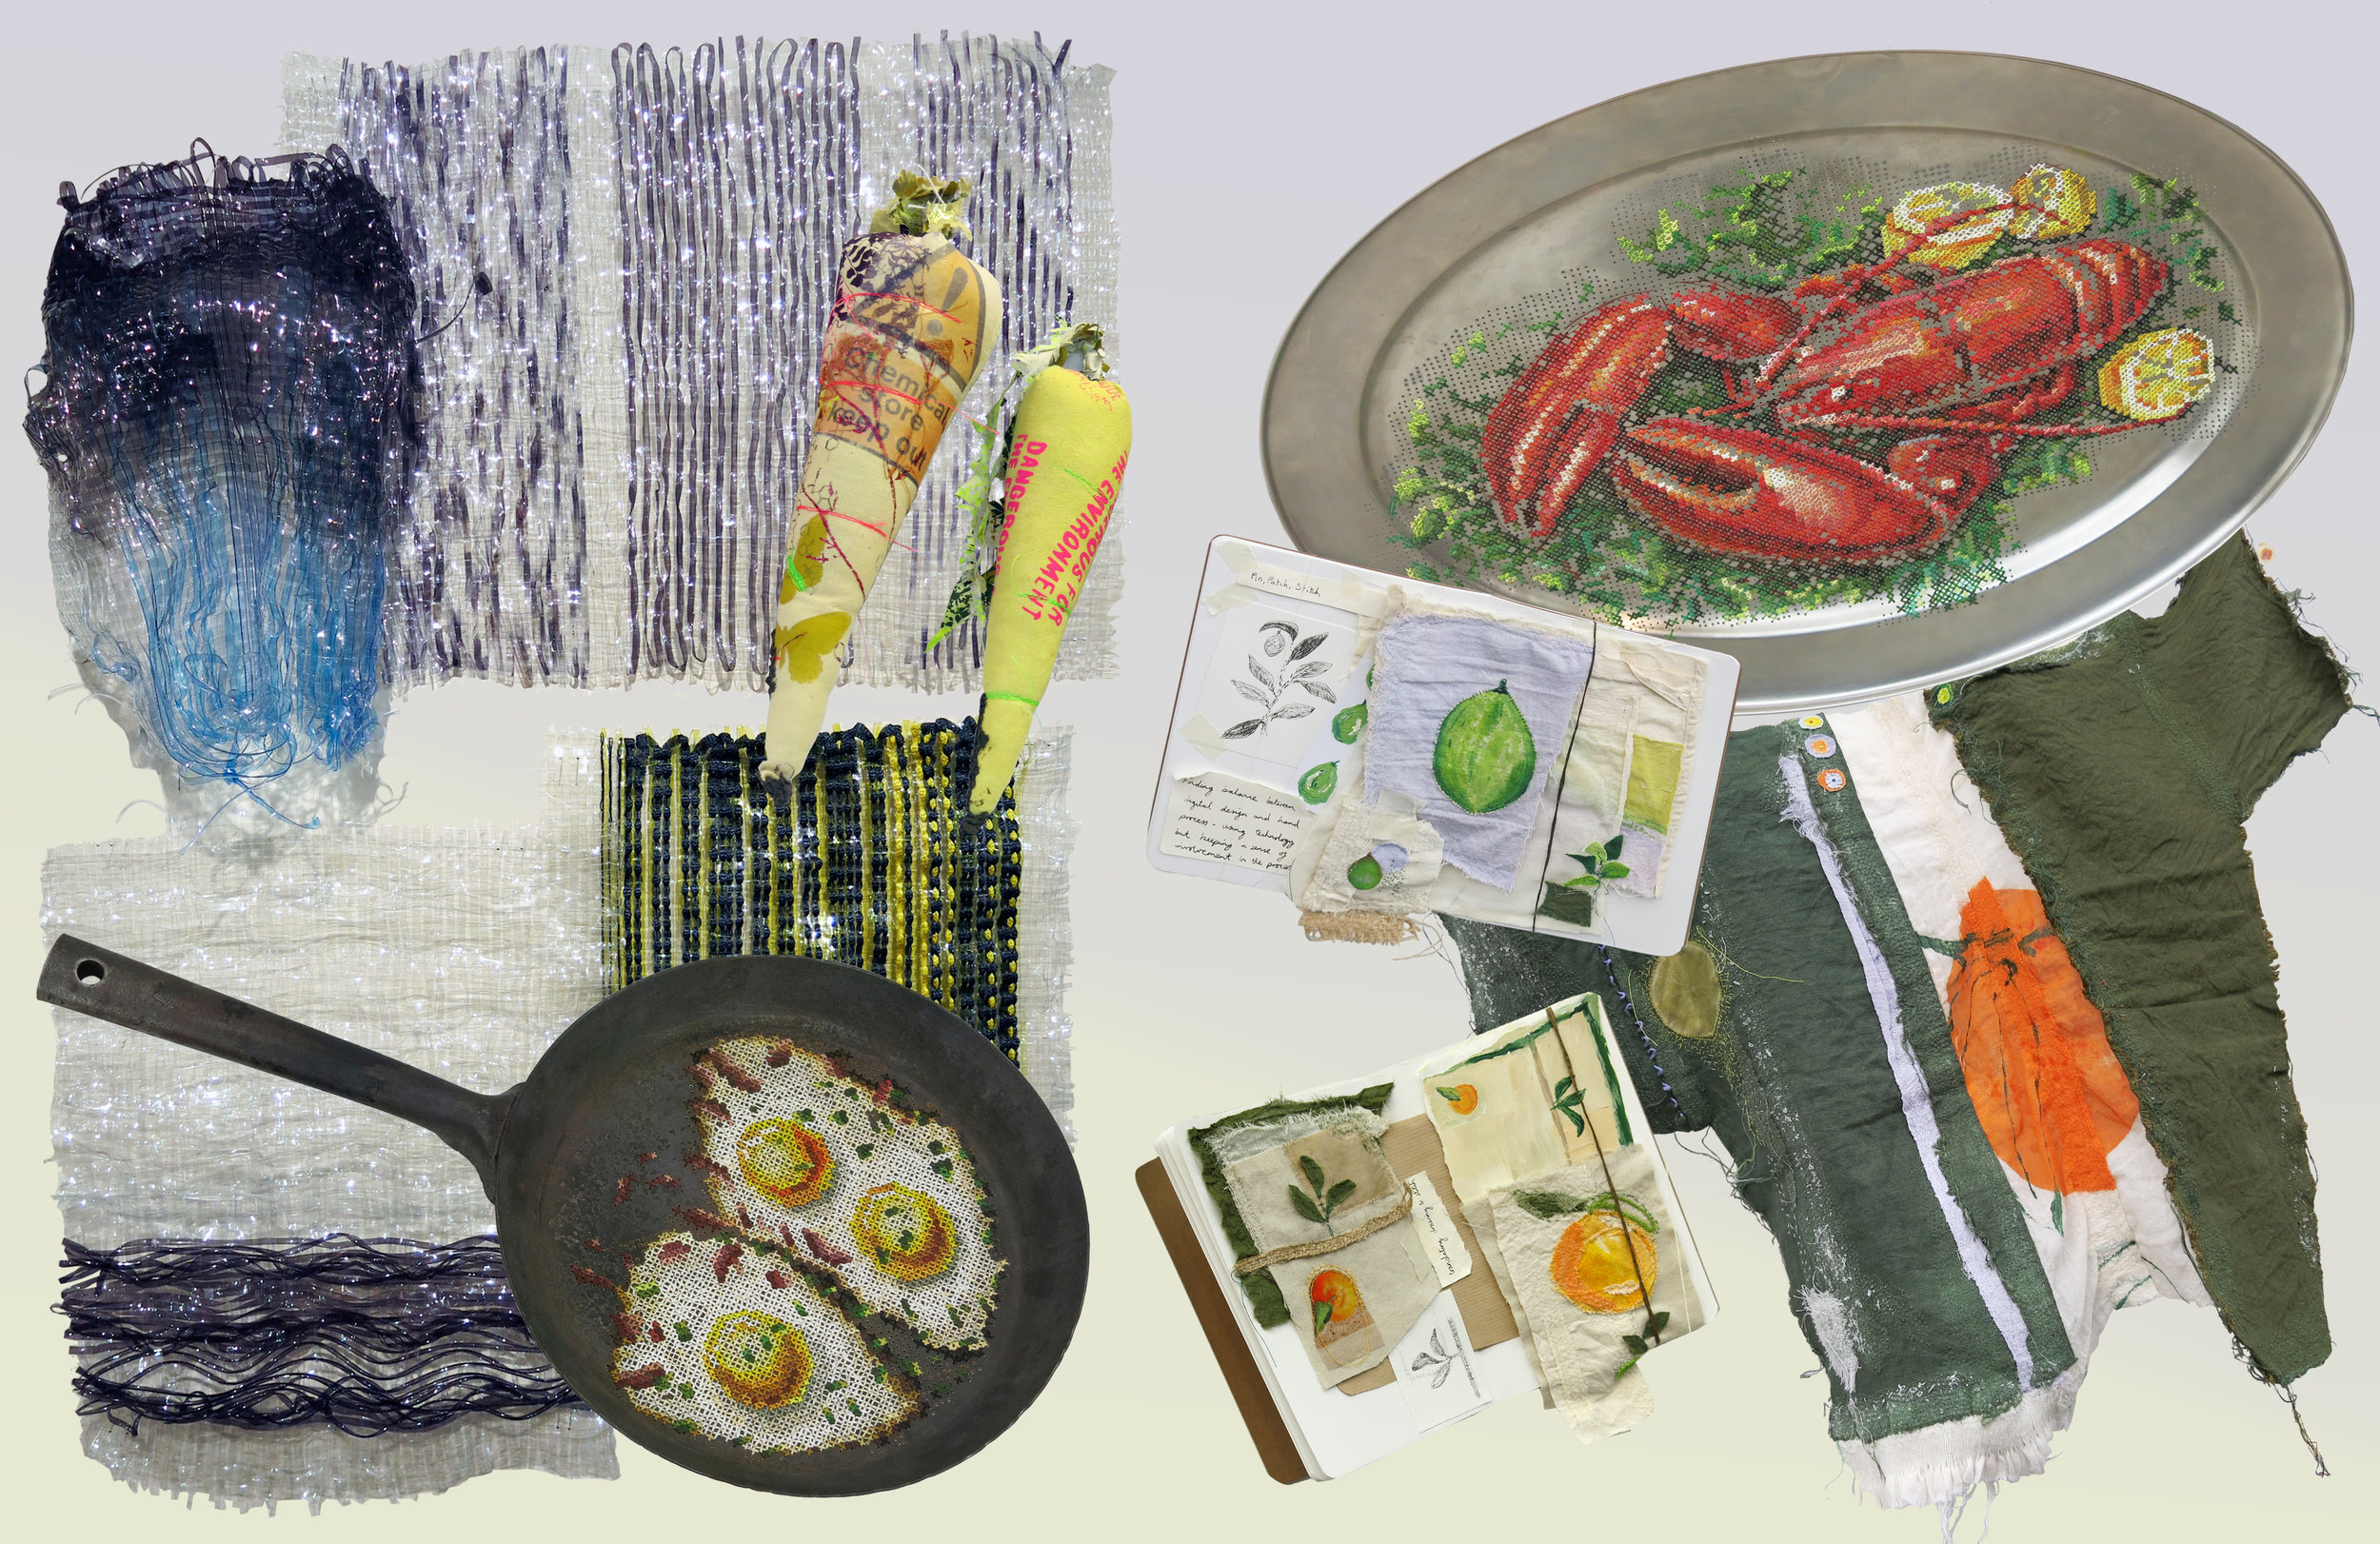 sustainable textiles - Recycled plastic waste textiles, food derived fabric dyes and food themed tapestries